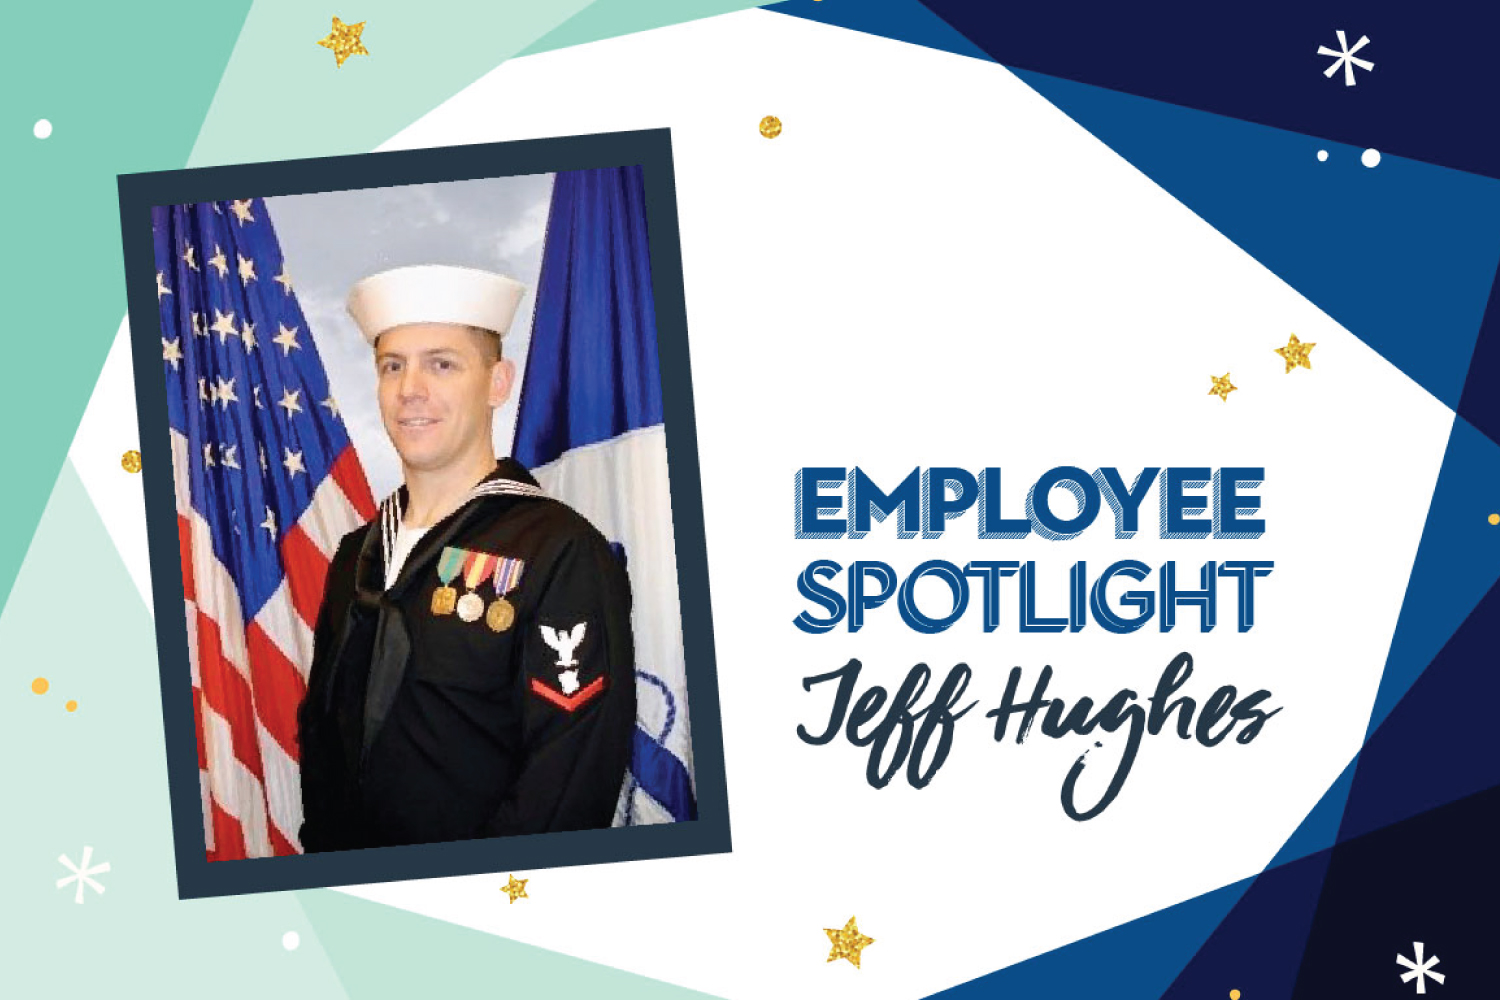 Employee Spotlight: Jeff Hughes